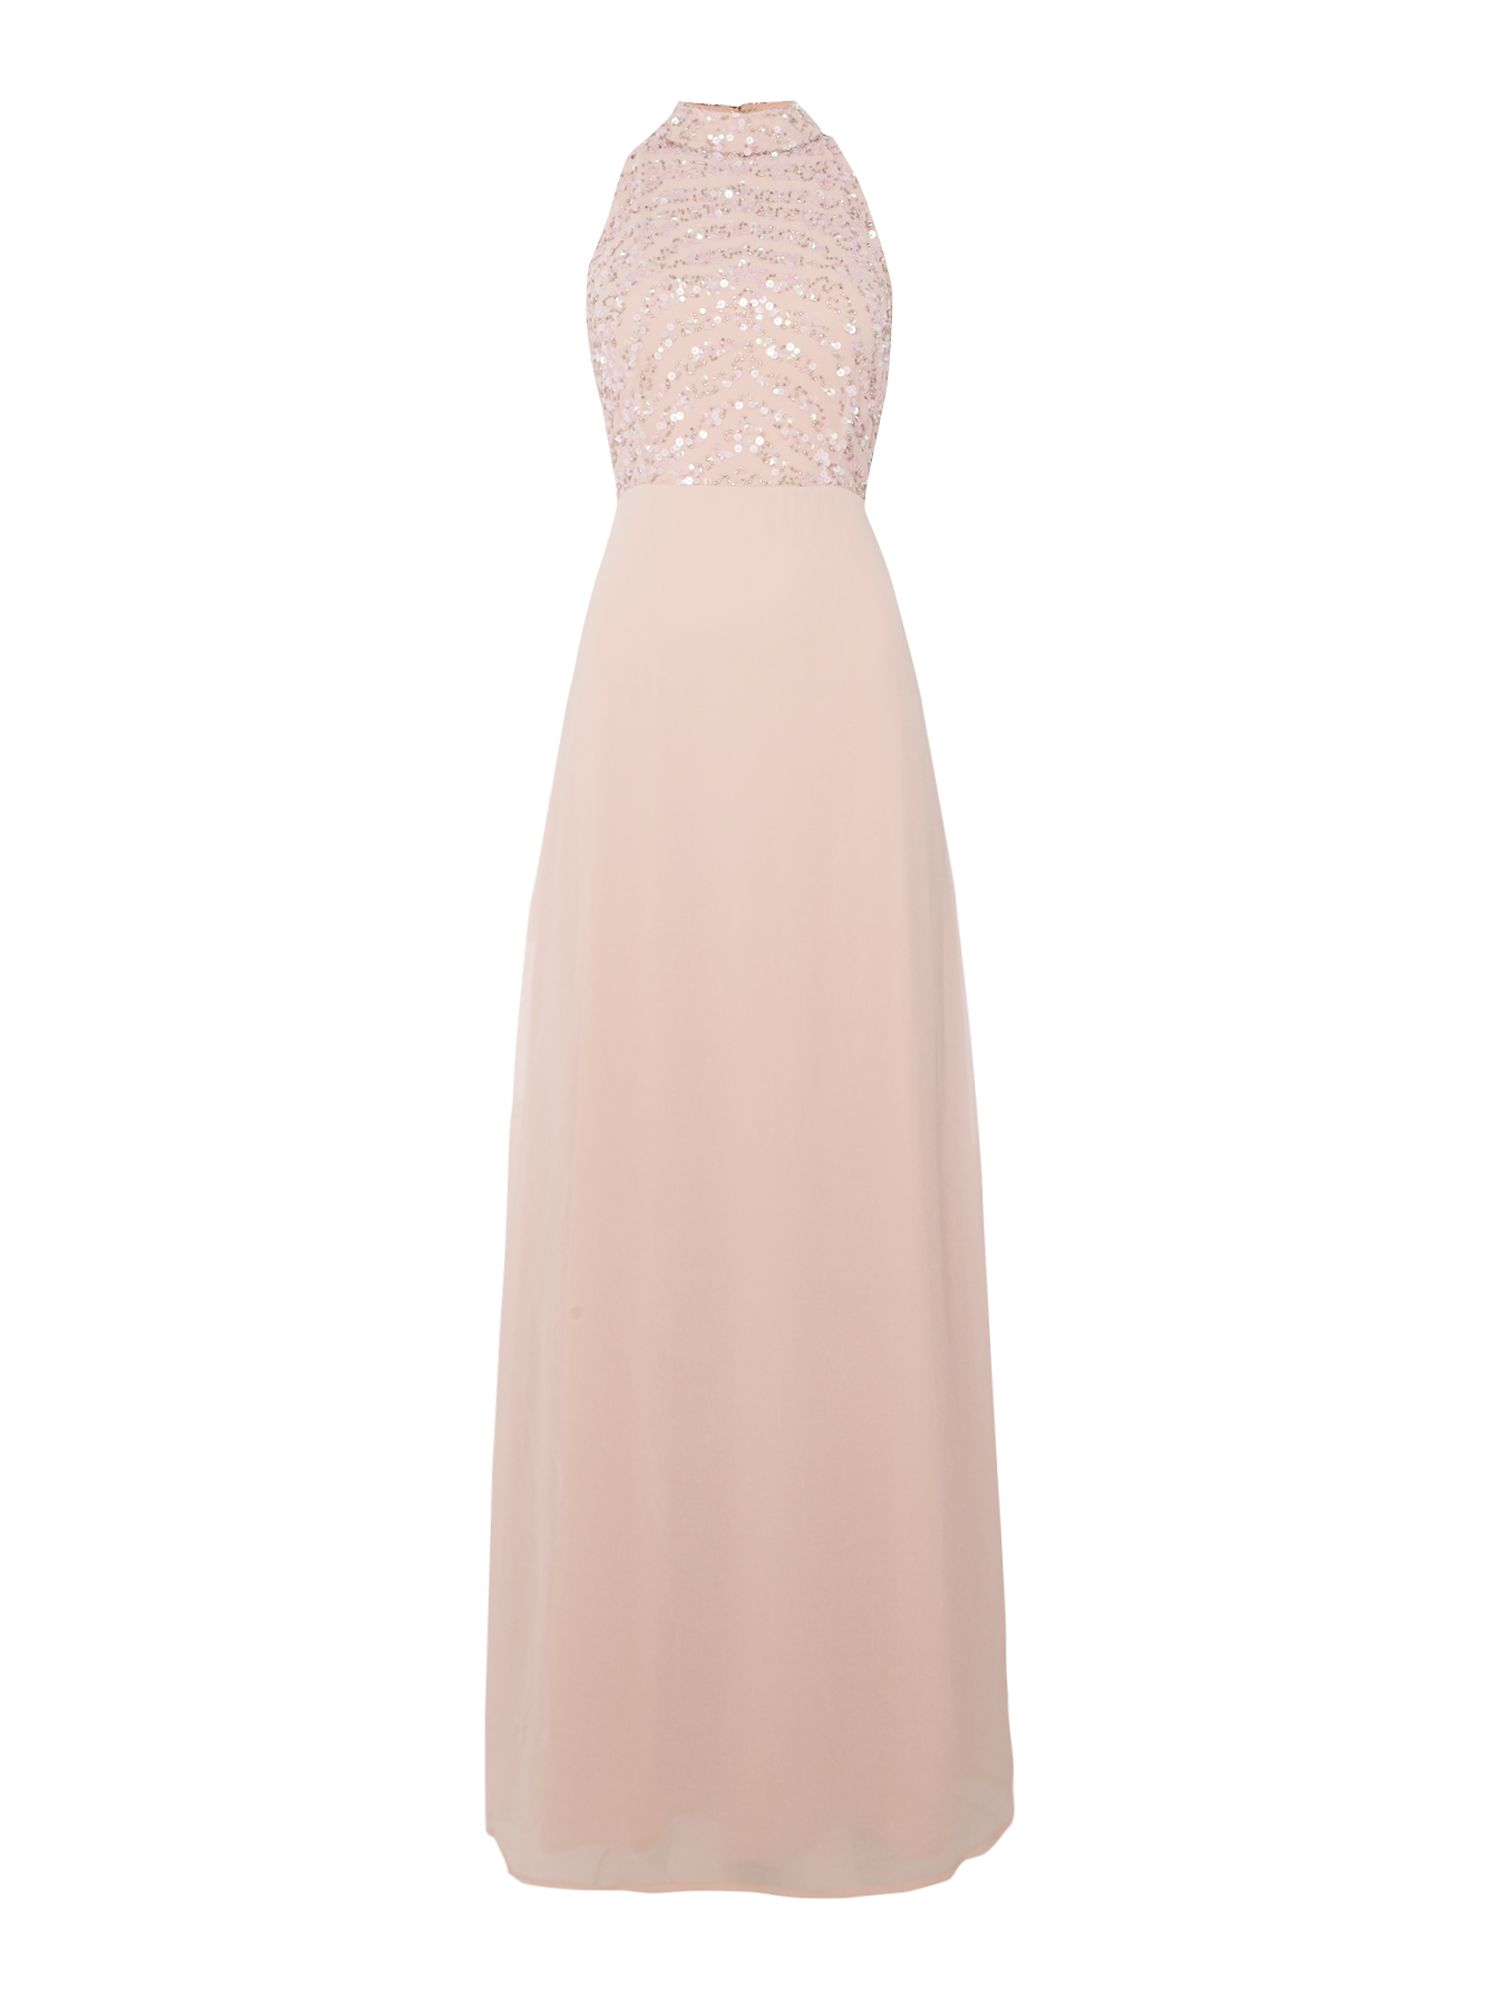 Lace and Beads Lace and Beads High Neck Maxi Dress, Pink